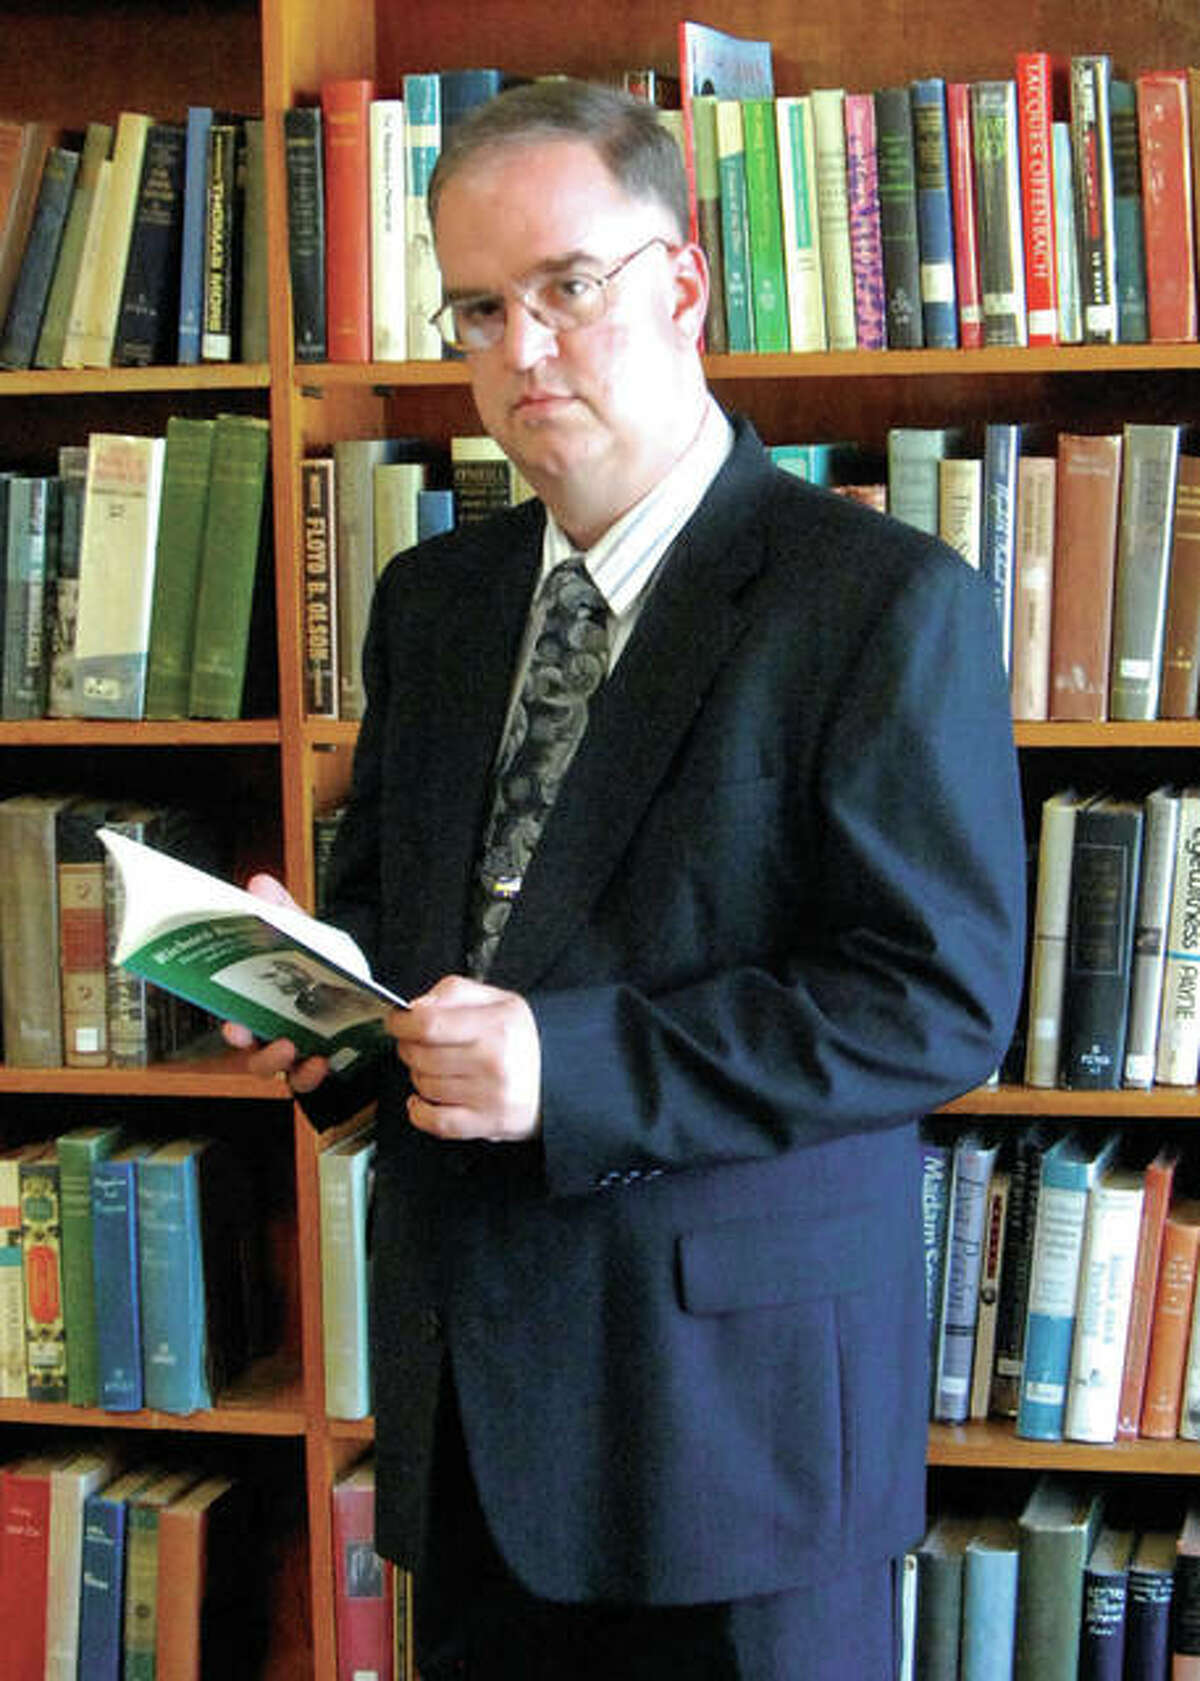 Historian Tom Emery of Carlinville has been awarded the Certificate of Excellence from the Illinois State Historical Society for the publication